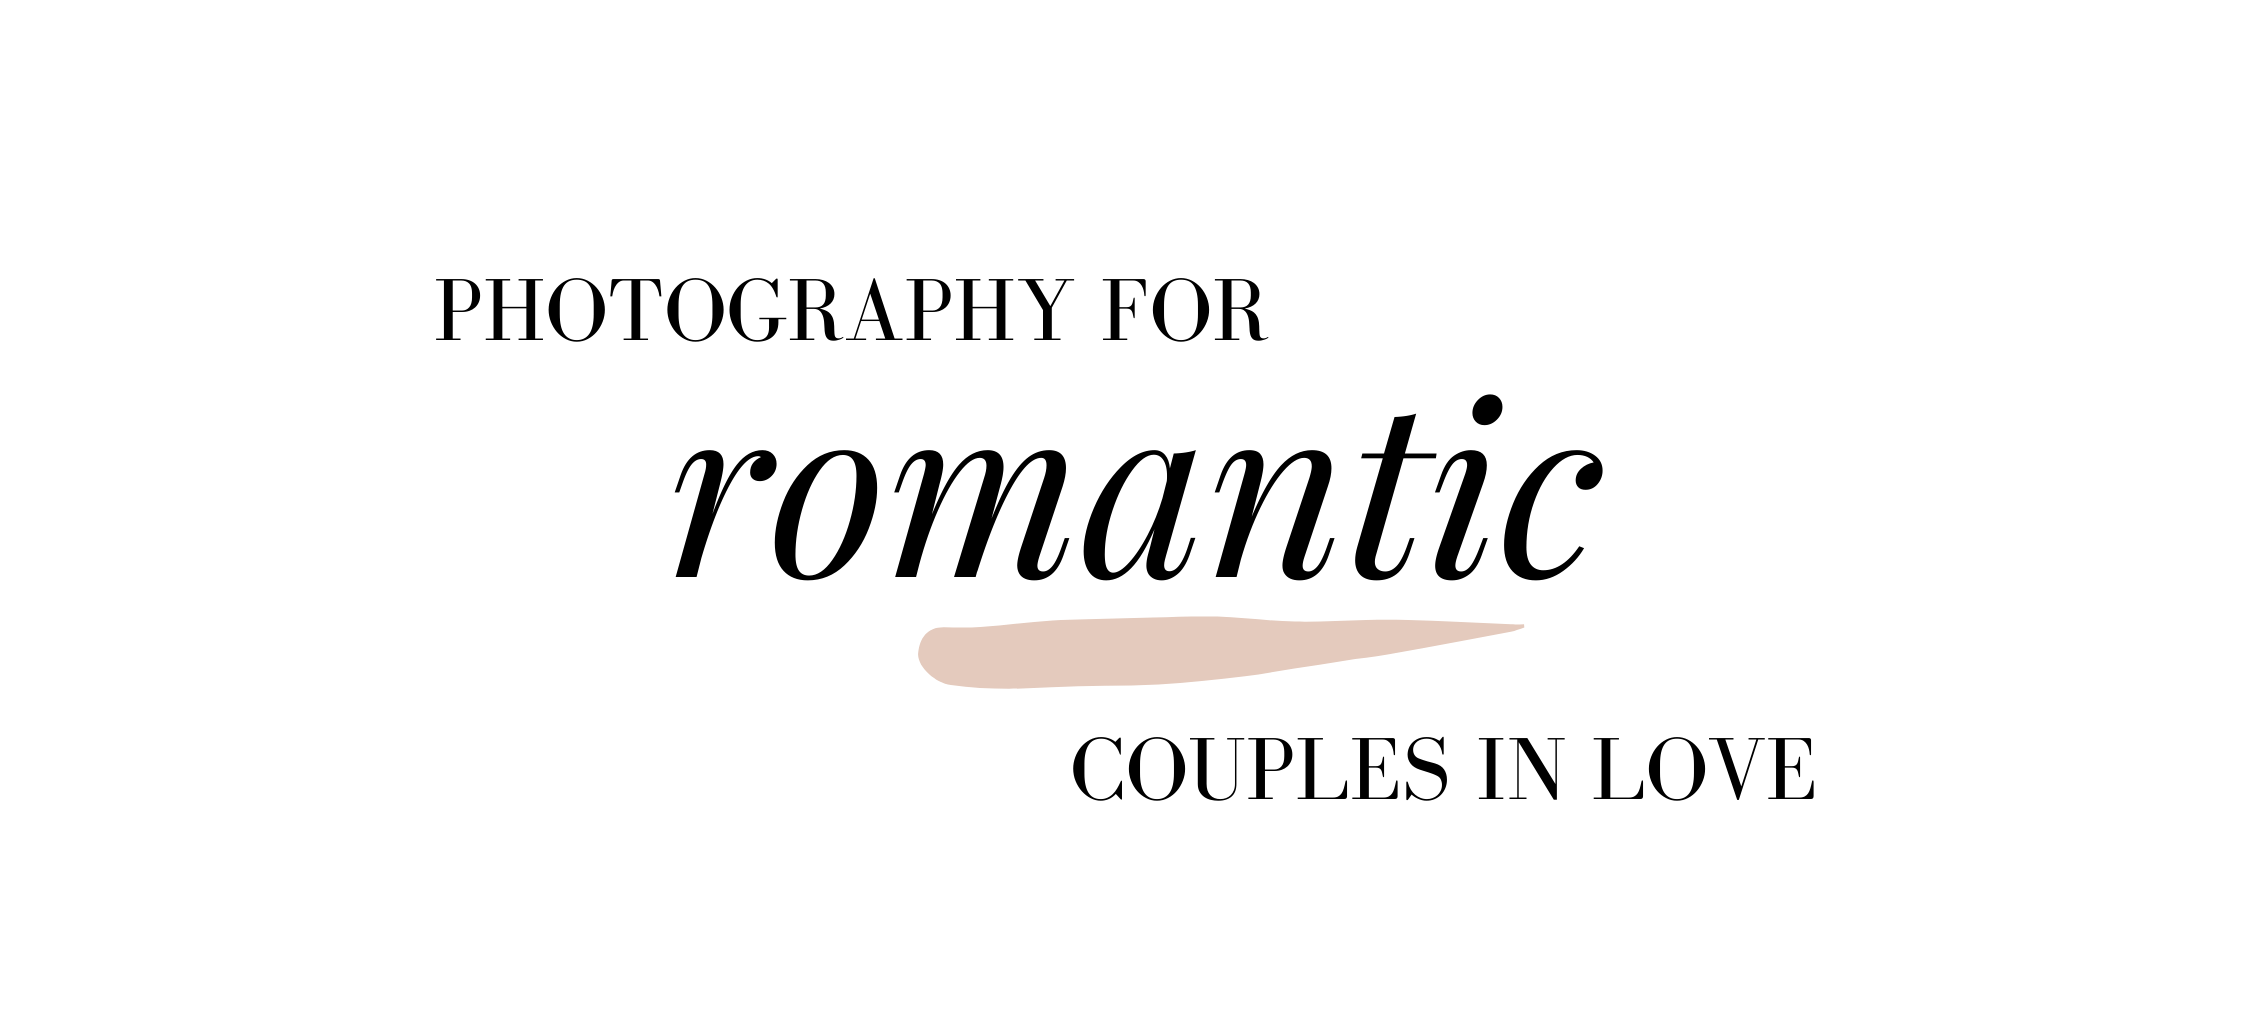 chinling ideal couples3